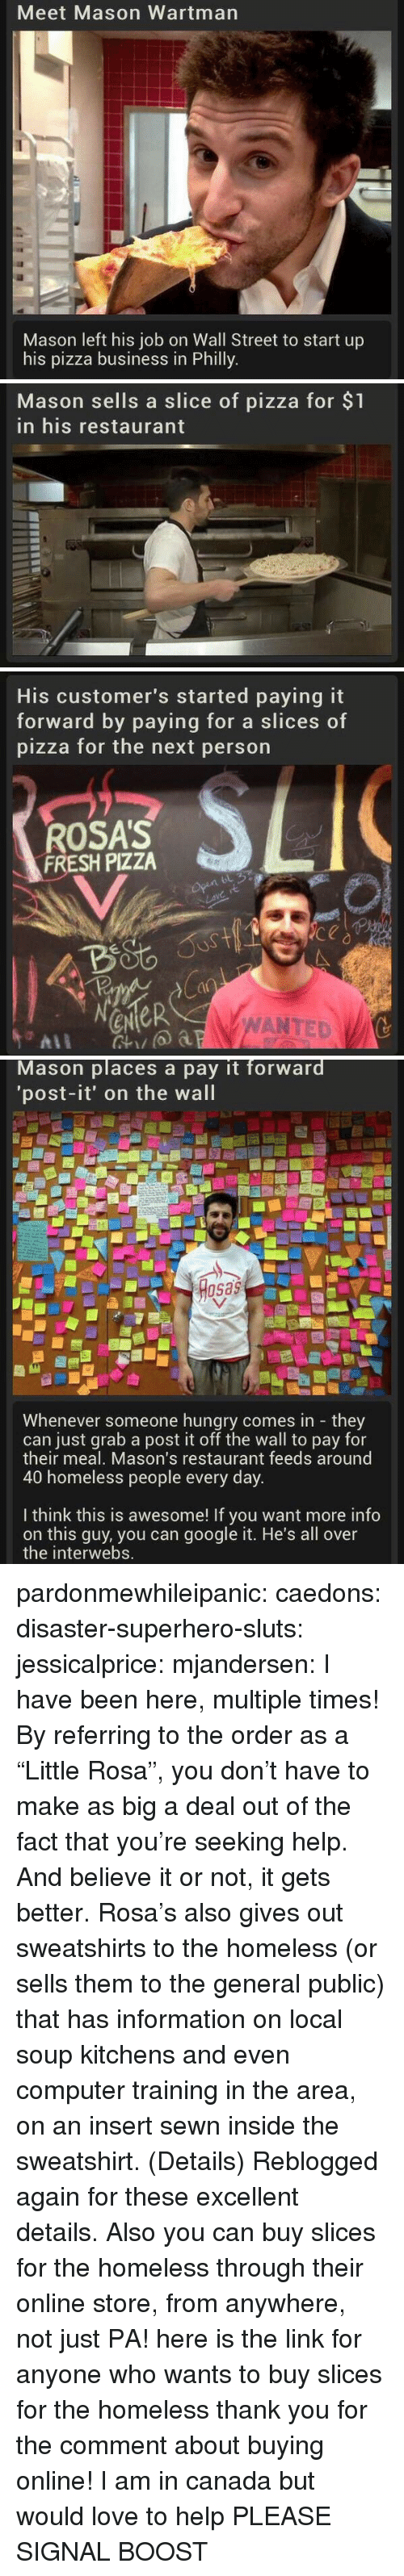 "philly: Meet Mason Wartman  Mason left his job on Wall Street to start up  his pizza business in Philly   Mason sells a slice of pizza for $1  in his restaurant   His customer's started paying it  forward by paying for a slice  pizza for the next person  s of  ROSA'S  FRESH PIZZA  4o  a0  eNeR  WANTED   Mason places a pay it forward  'post-it' on the wall  osas  Whenever someone hungry comes in they  can just grab a post it off the wall to pay for  their meal, Mason's restaurant feeds around  40 homeless people every day  I think this is awesome! If you want more info  on this guy, you can google it. He's all over  the interwebs. pardonmewhileipanic: caedons:  disaster-superhero-sluts:  jessicalprice:  mjandersen:  I have been here, multiple times!   By referring to the order as a ""Little Rosa"", you don't have to make as big a deal out of the fact that you're seeking help. And believe it or not, it gets better. Rosa's also gives out sweatshirts to the homeless (or sells them to the general public) that has information on local soup kitchens and even computer training in the area, on an insert sewn inside the sweatshirt. (Details)  Reblogged again for these excellent details.  Also you can buy slices for the homeless through their online store, from anywhere, not just PA!  here is the link for anyone who wants to buy slices for the homeless  thank you for the comment about buying online! I am in canada but would love to help PLEASE SIGNAL BOOST"